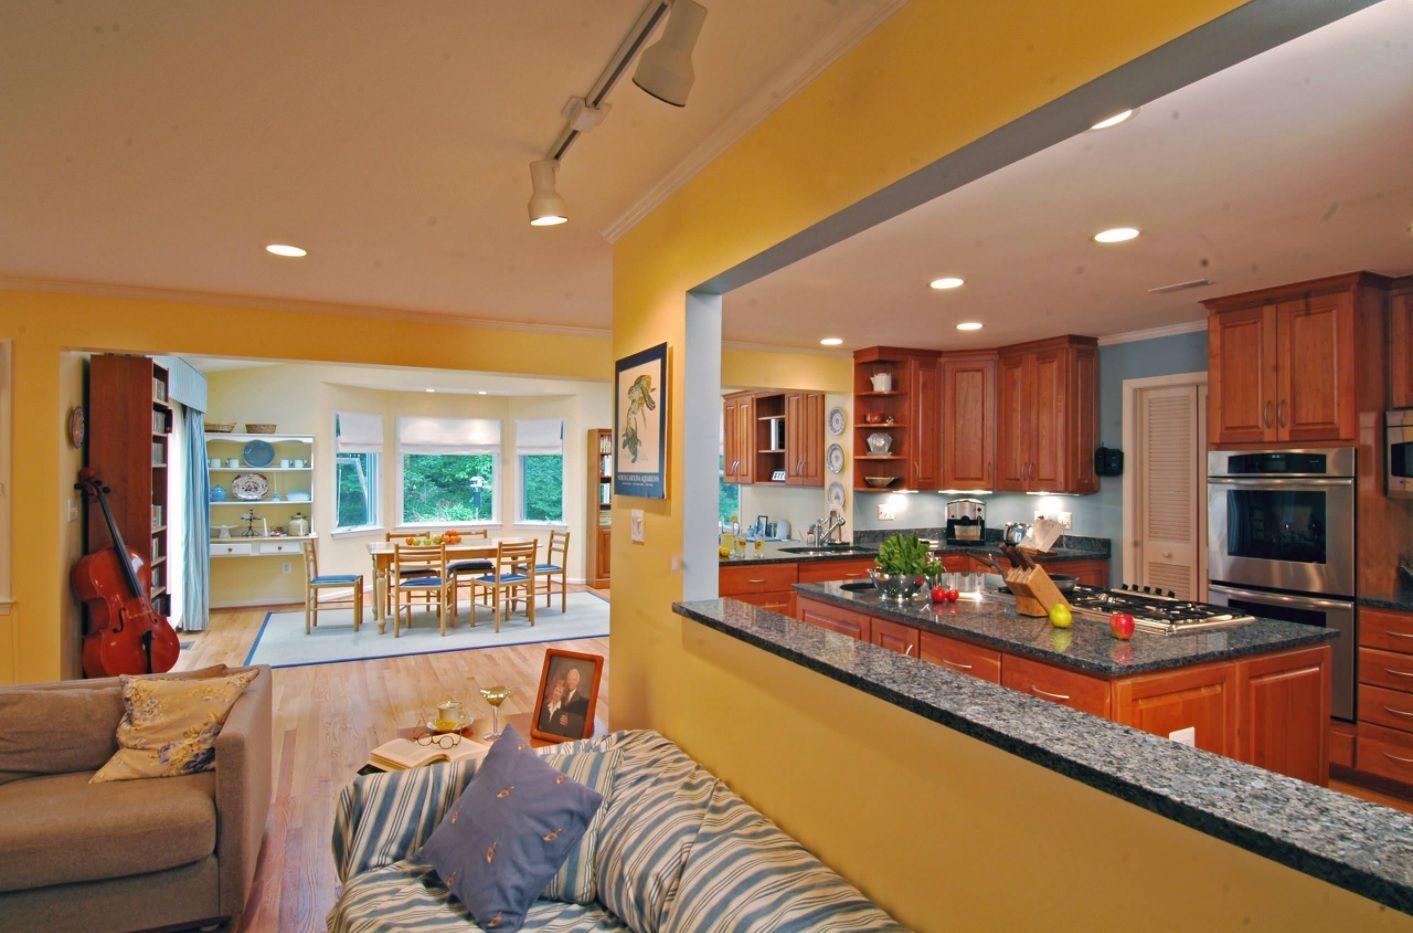 Yellow framed partition for open space layout studio with combined kitchen and living room